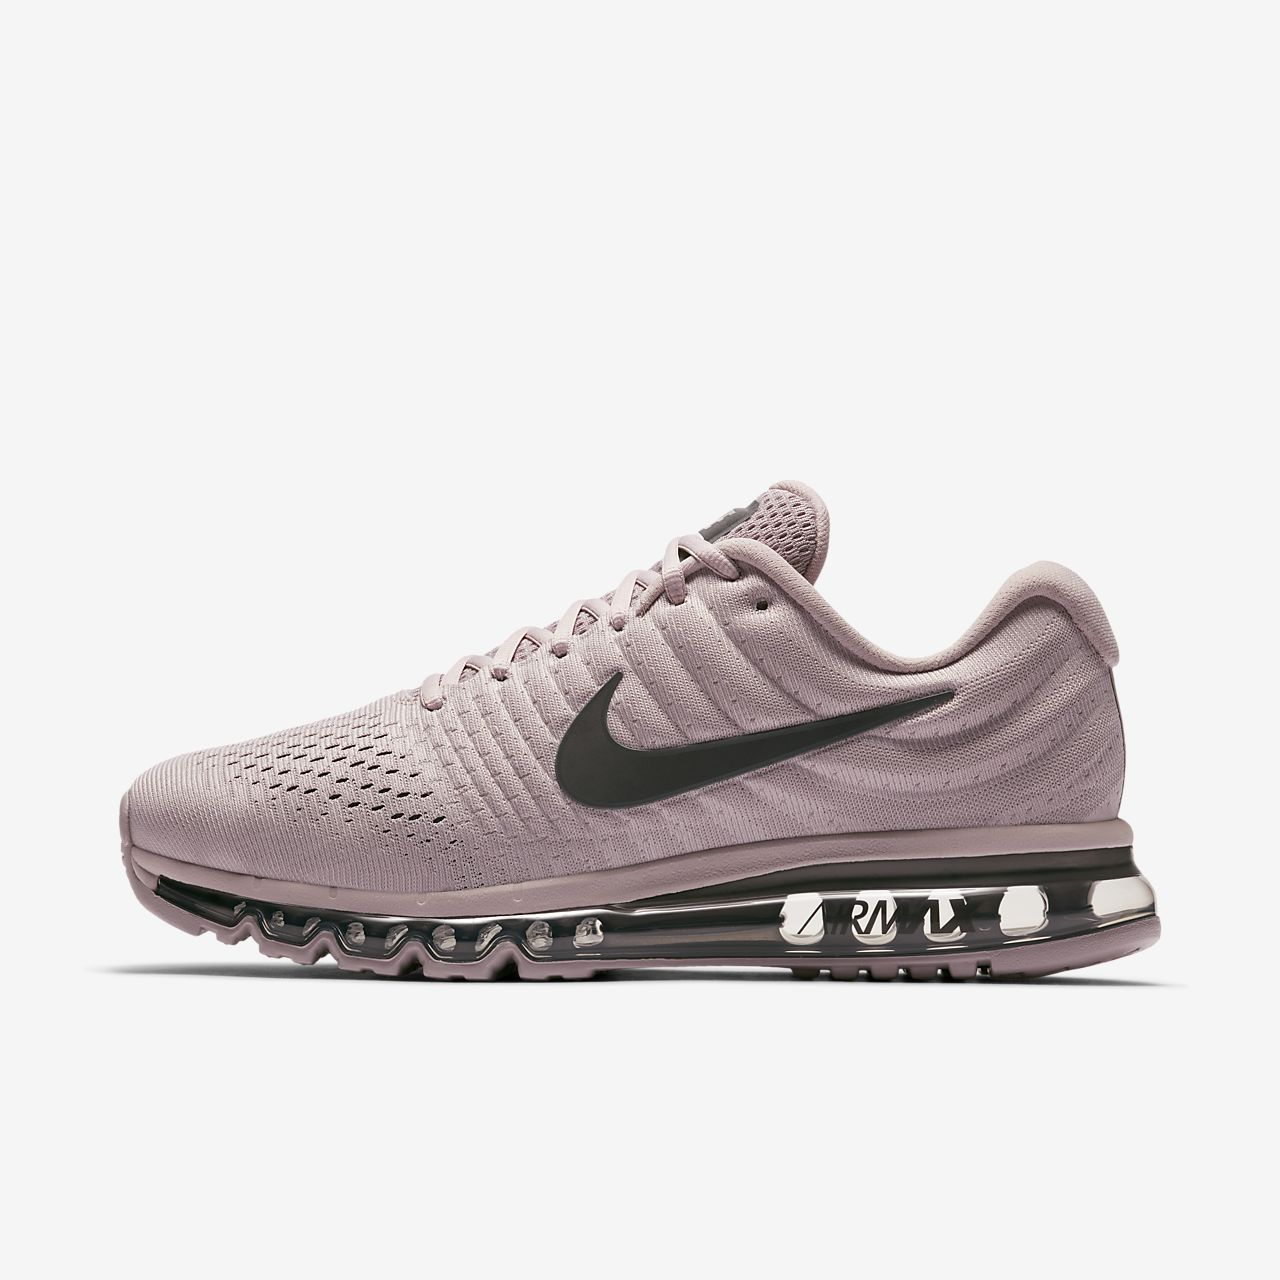 1bb11cd4c9e2 Nike Air Max 2017 SE Men s Shoe. Nike.com AU